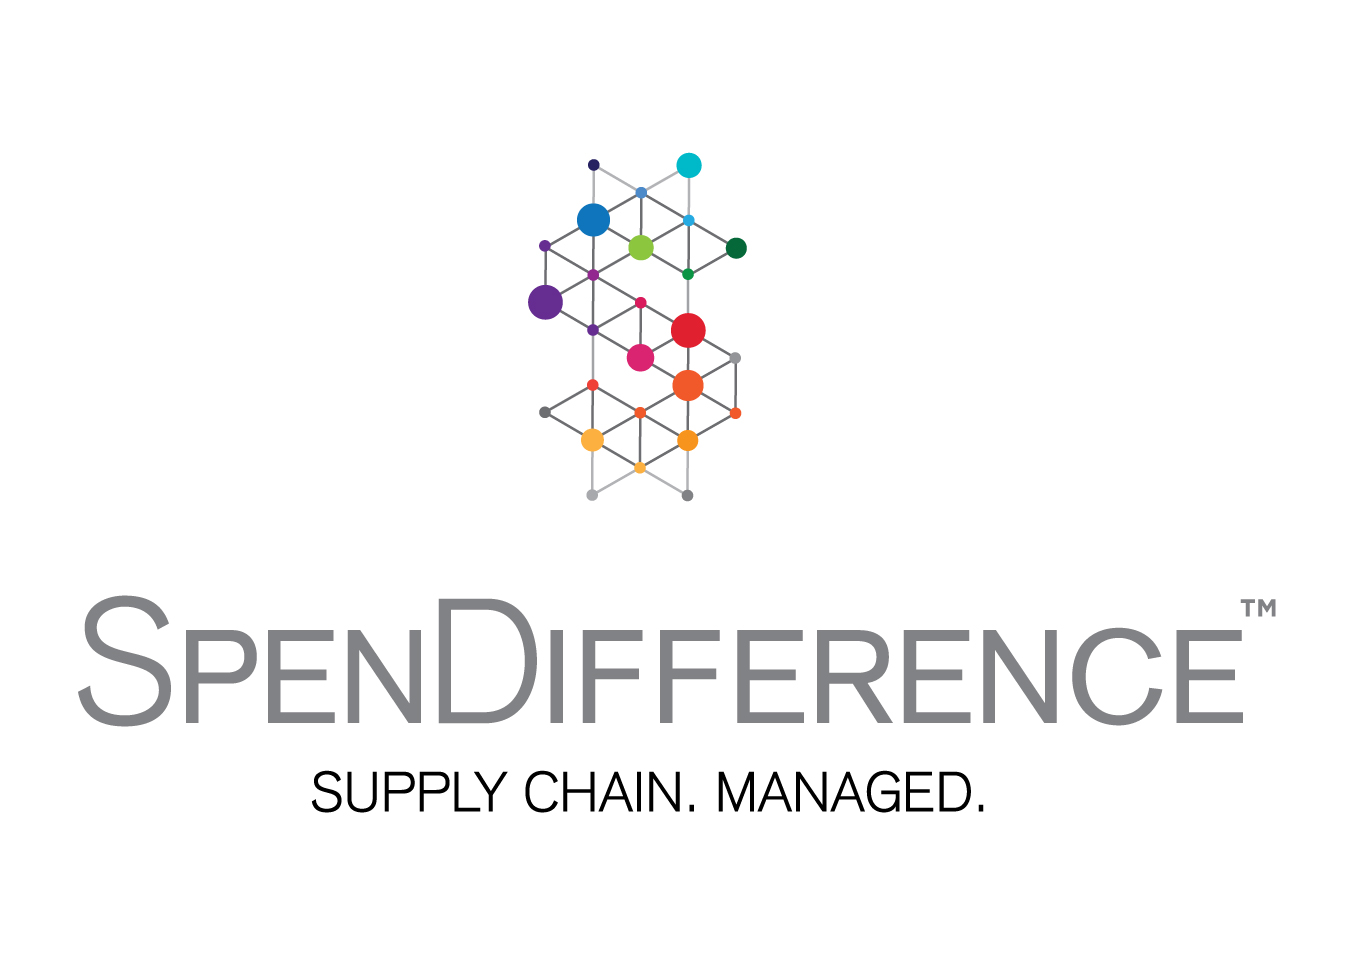 SpenDifference-Logo-2018.jpg